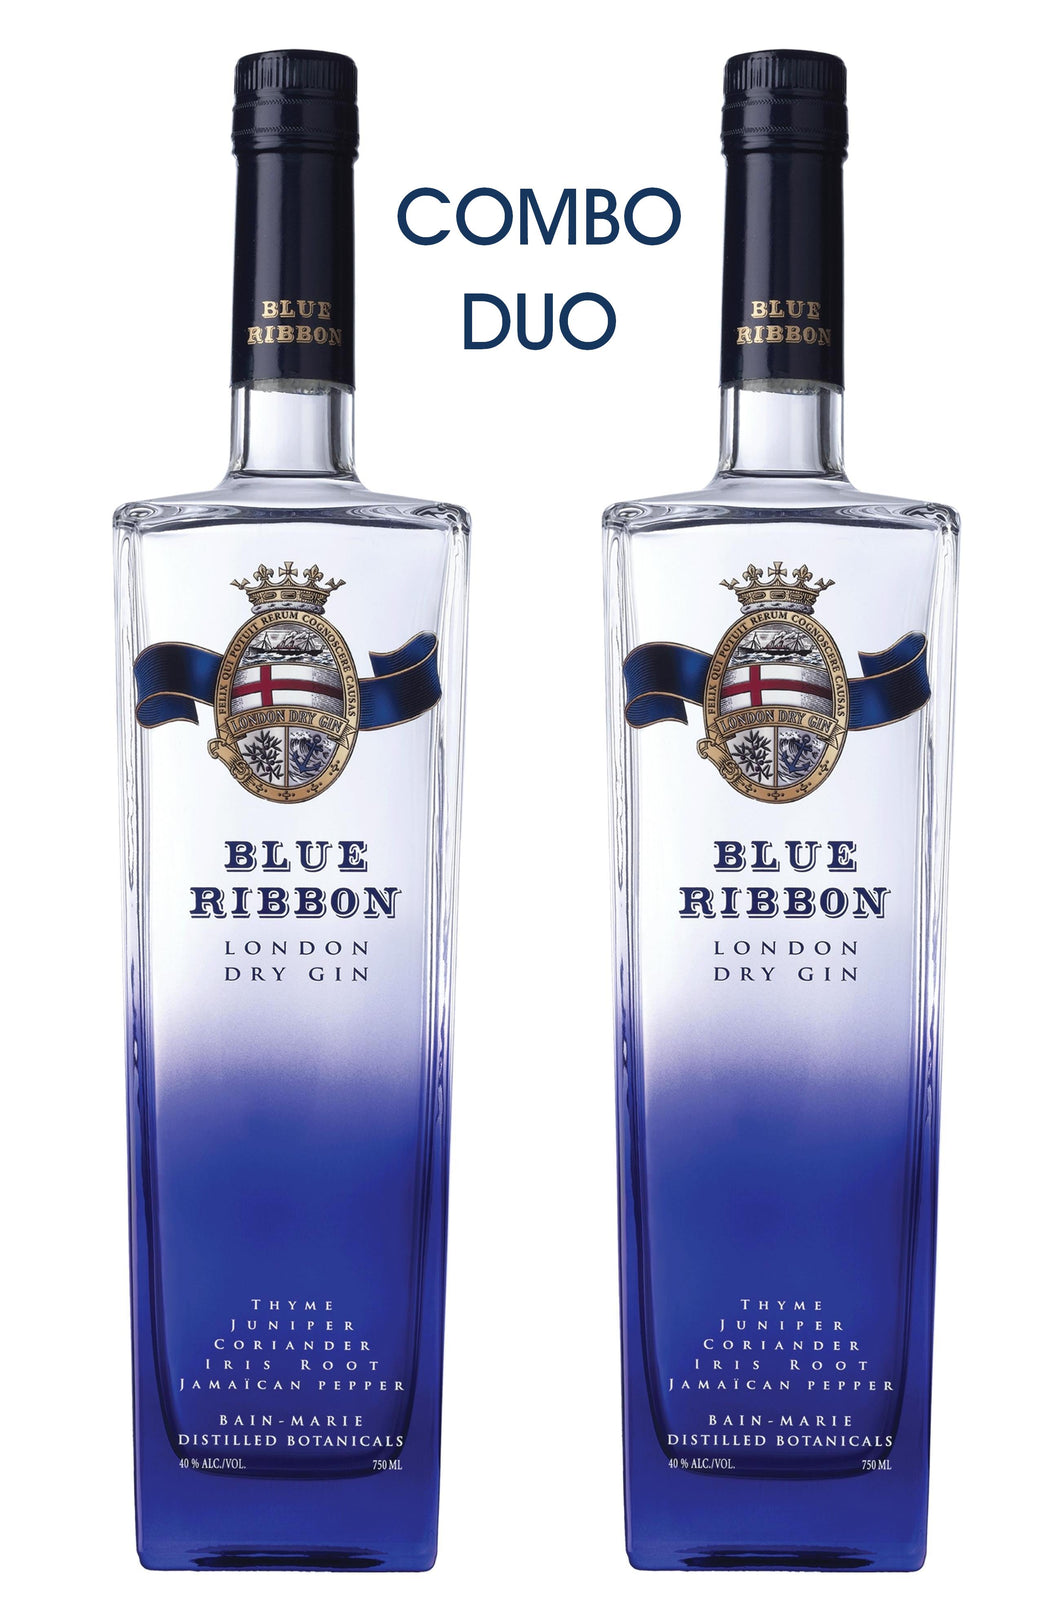 Blue Ribbon London Dry Gin COMBO DUO